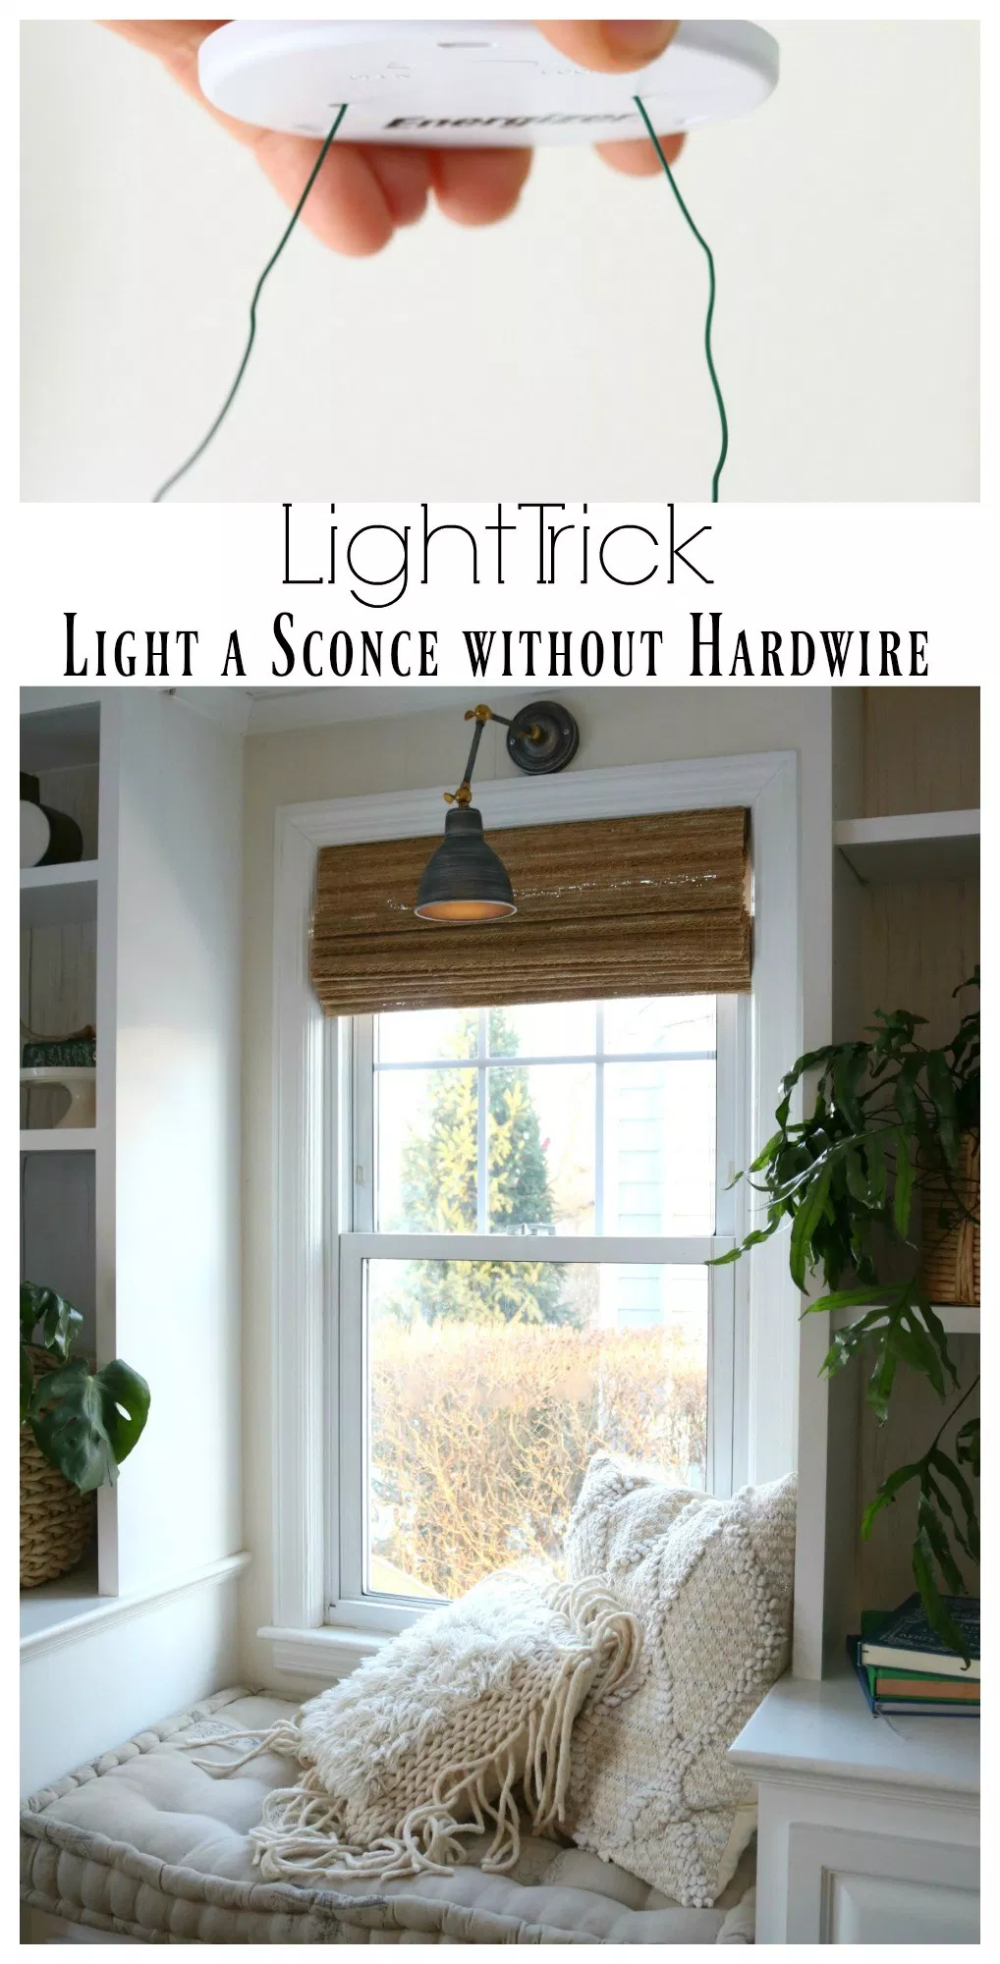 Diy Sconces To Have Light Without Power Magic Light Trick Nesting With Grace In 2020 Diy Sconces Diy Sconce Light Home Decor Accessories